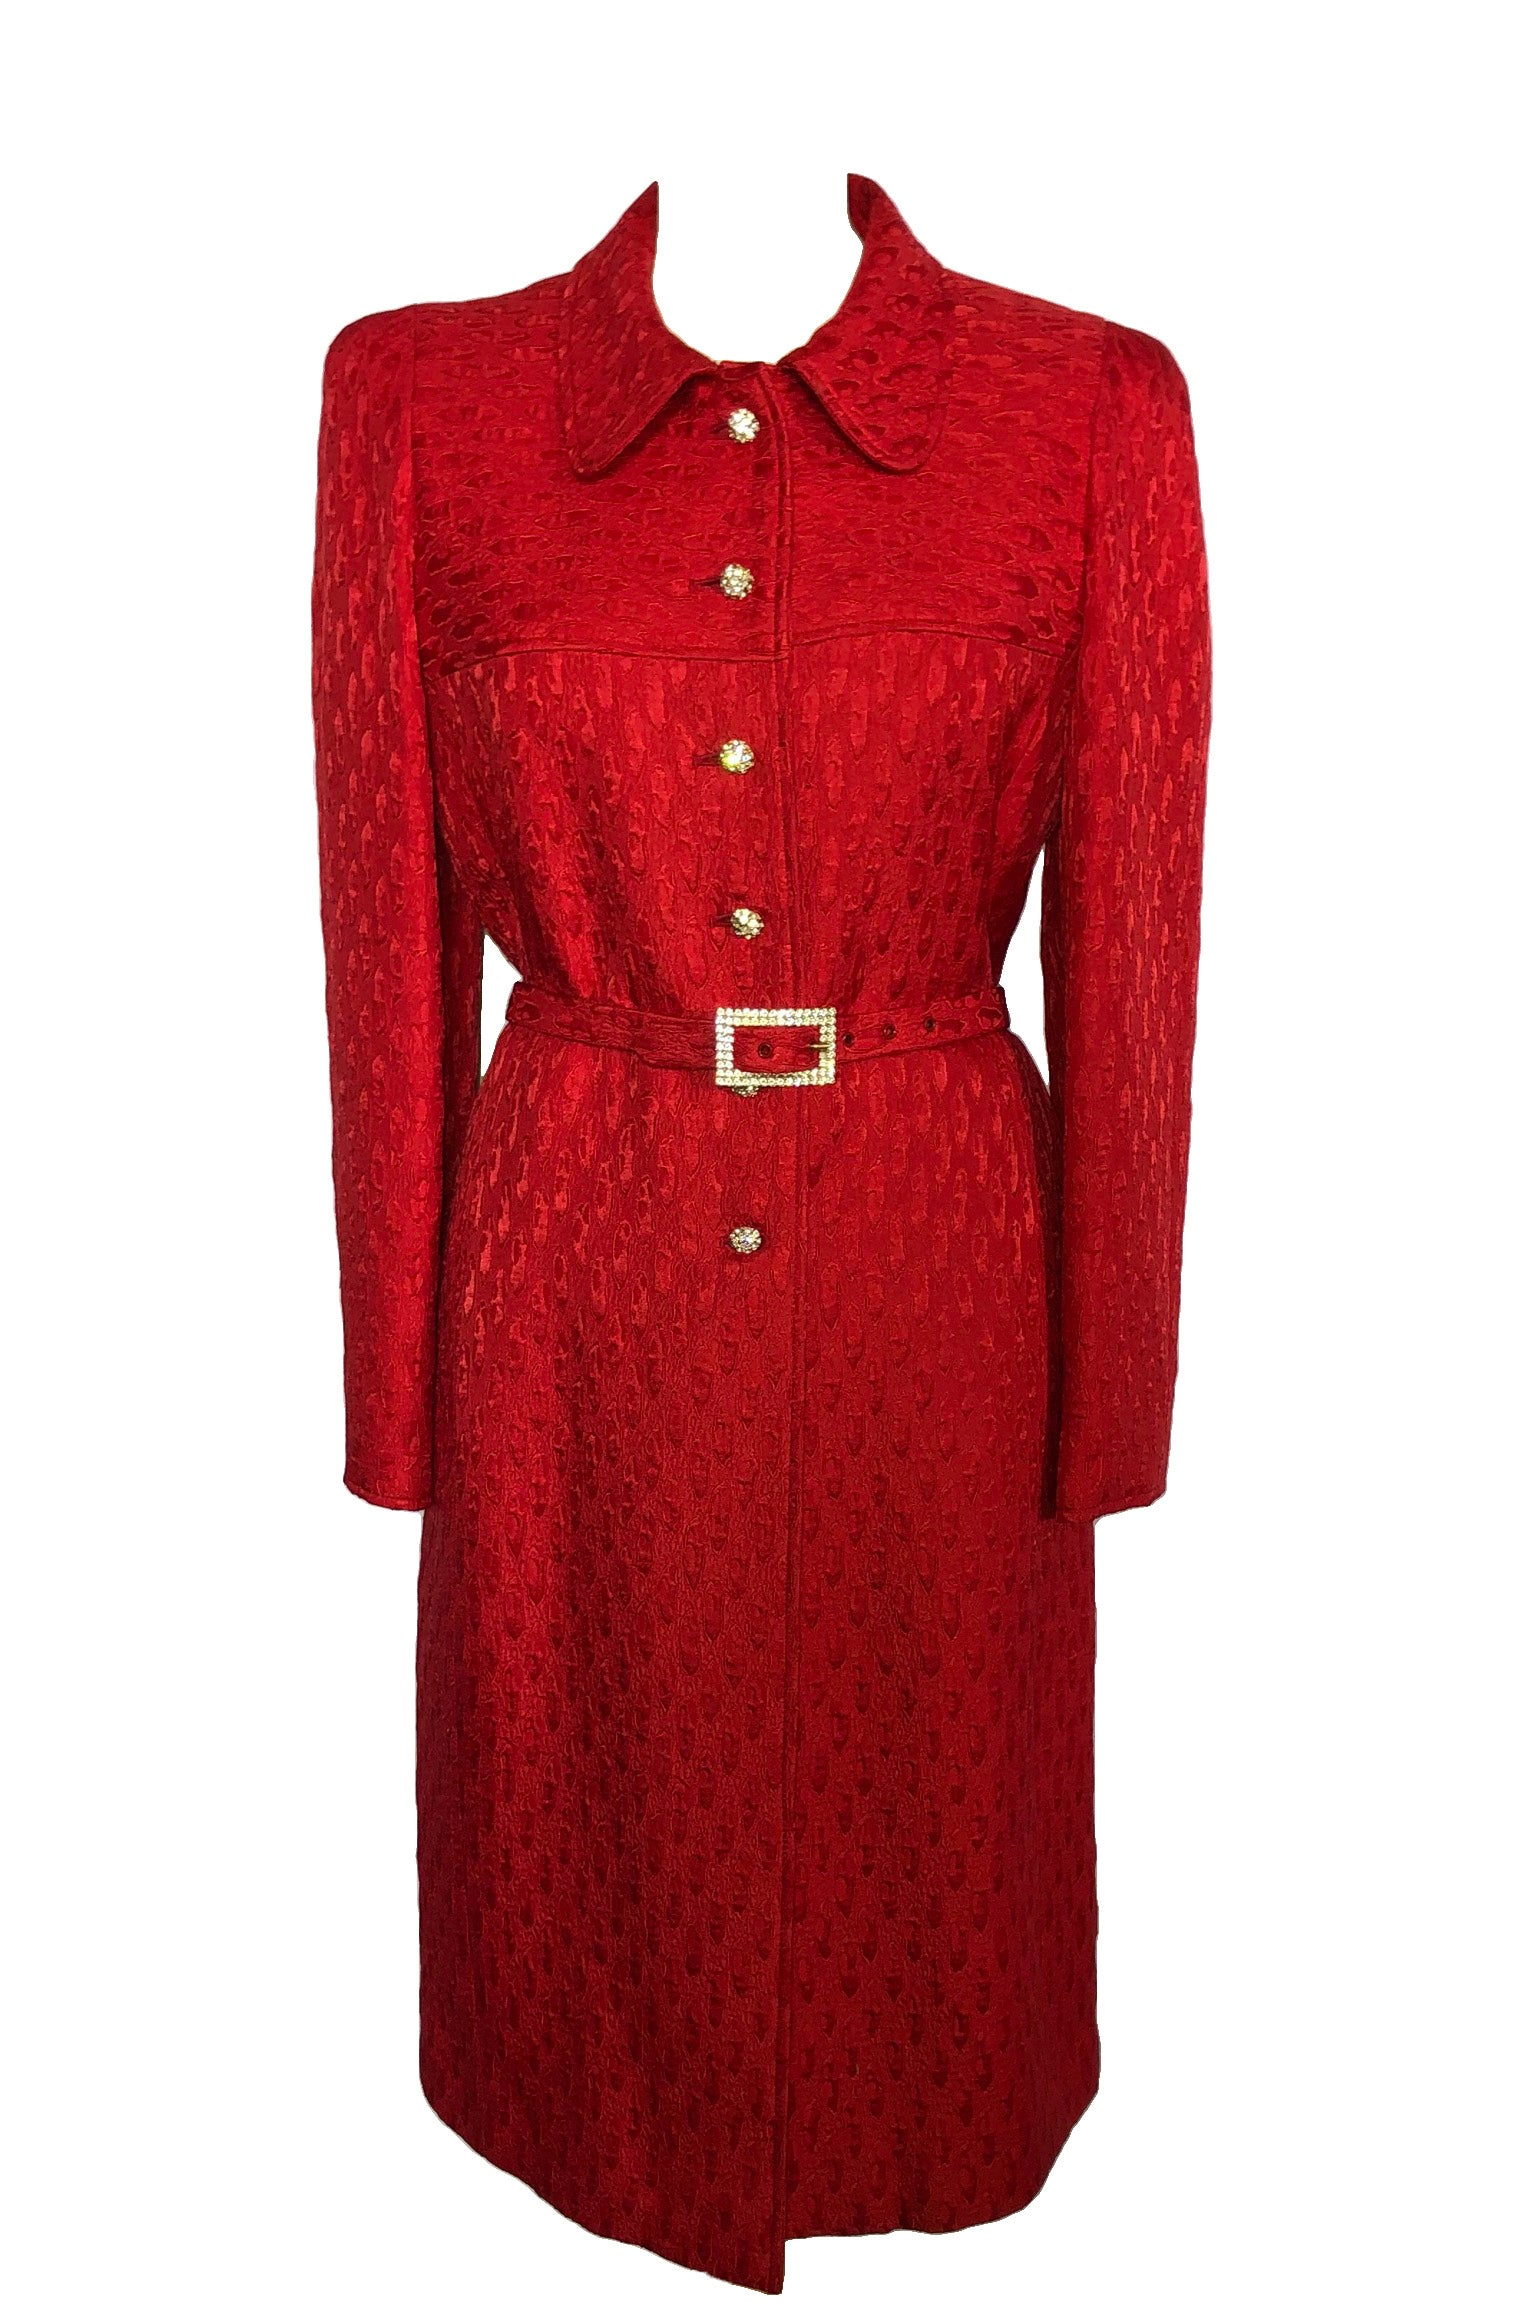 Stewart Parvin Skirt, Long Coat and Belt Set in Red Size Fits 38 (EU)